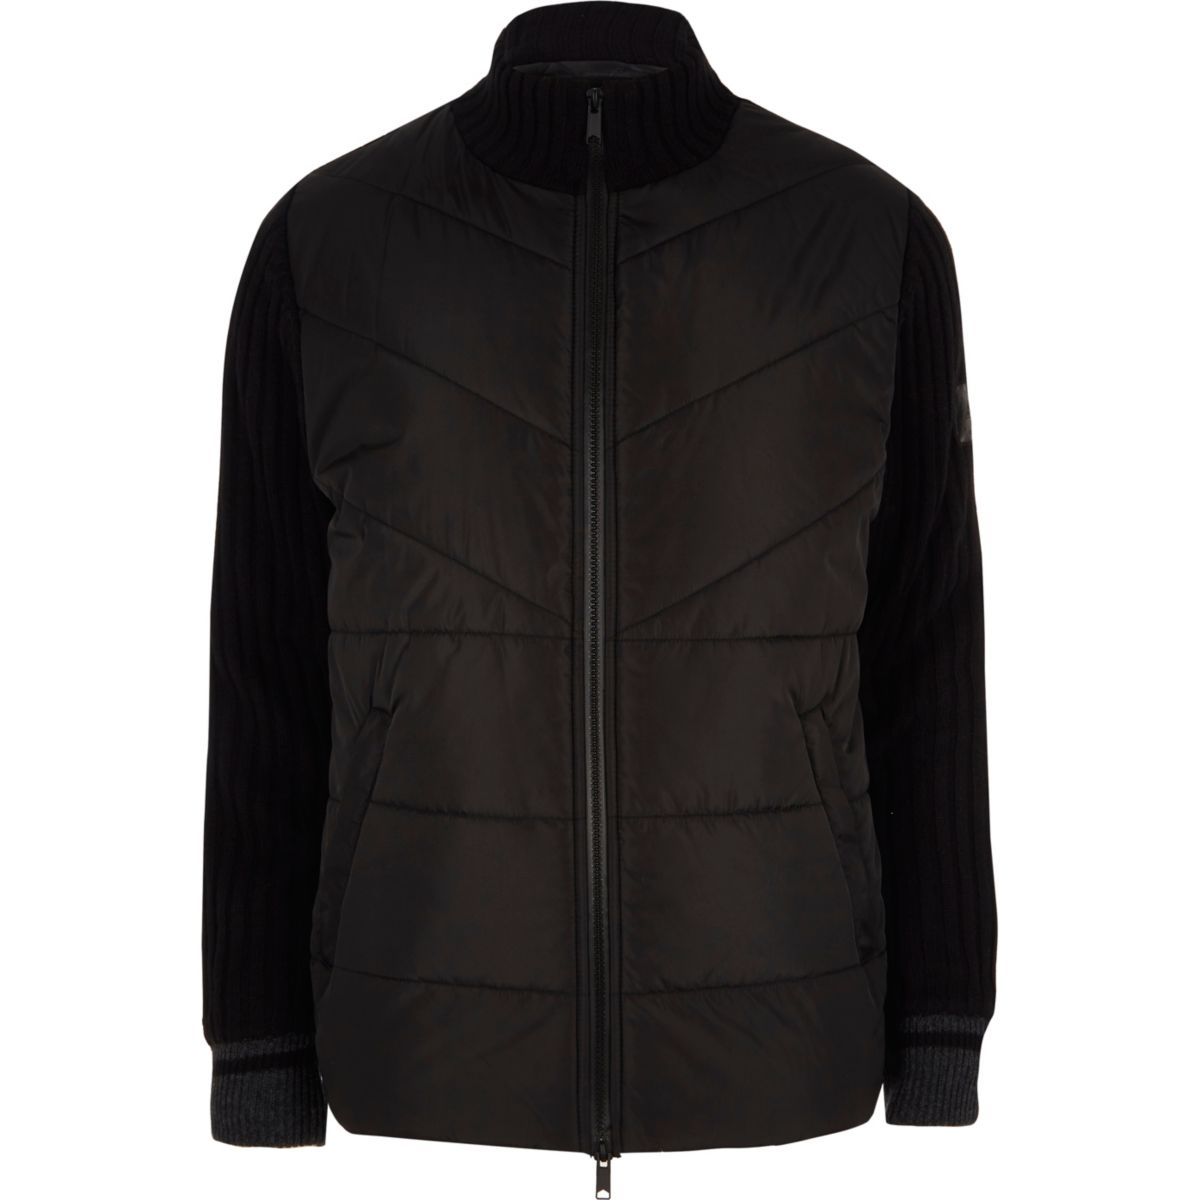 Black quilted contrast knit sleeve jacket